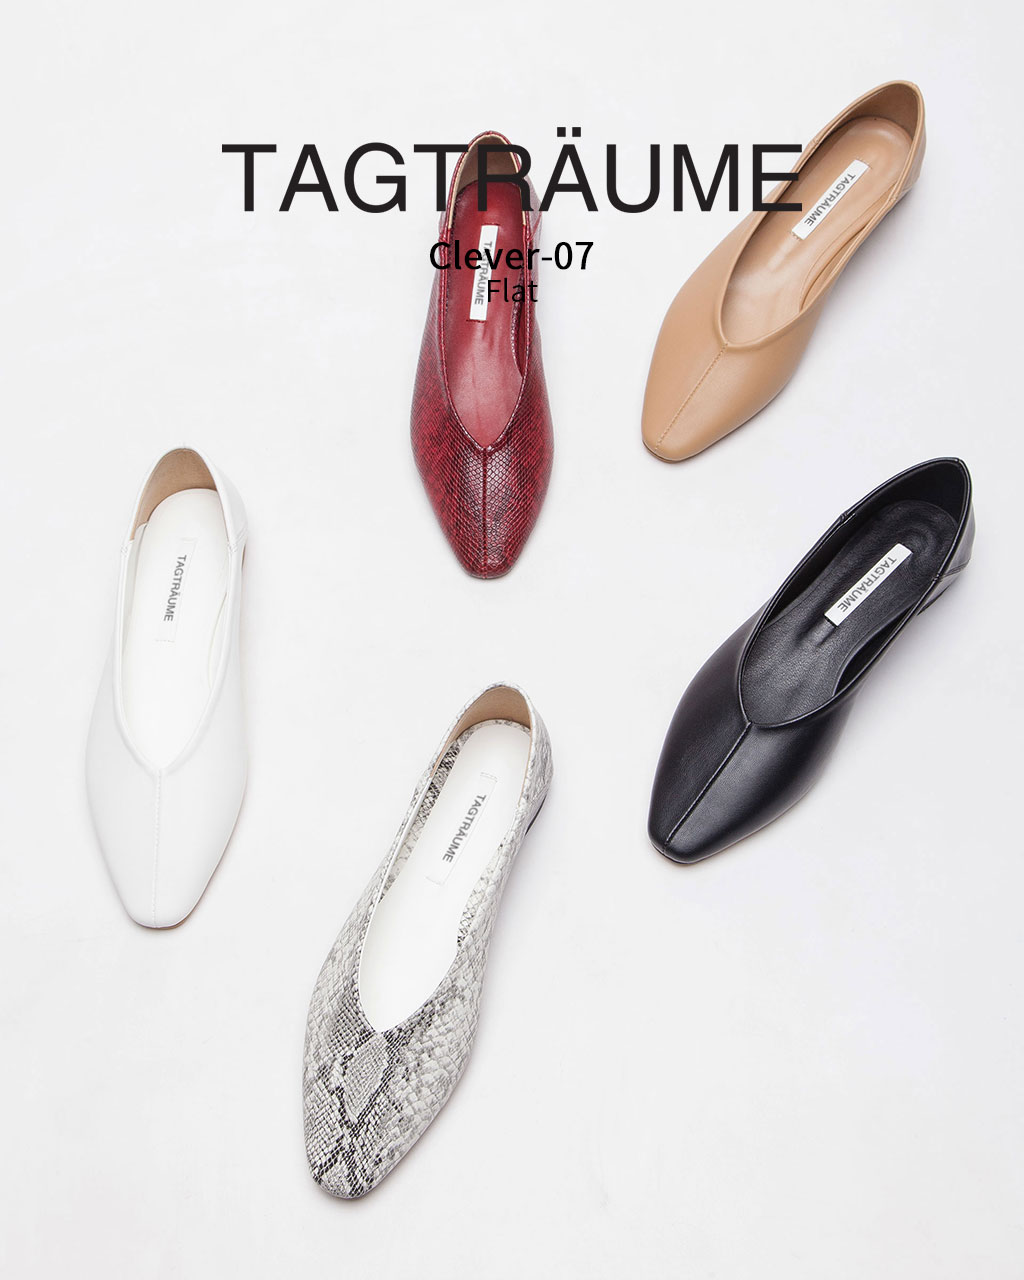 Tagtraume Clever-07 - 0